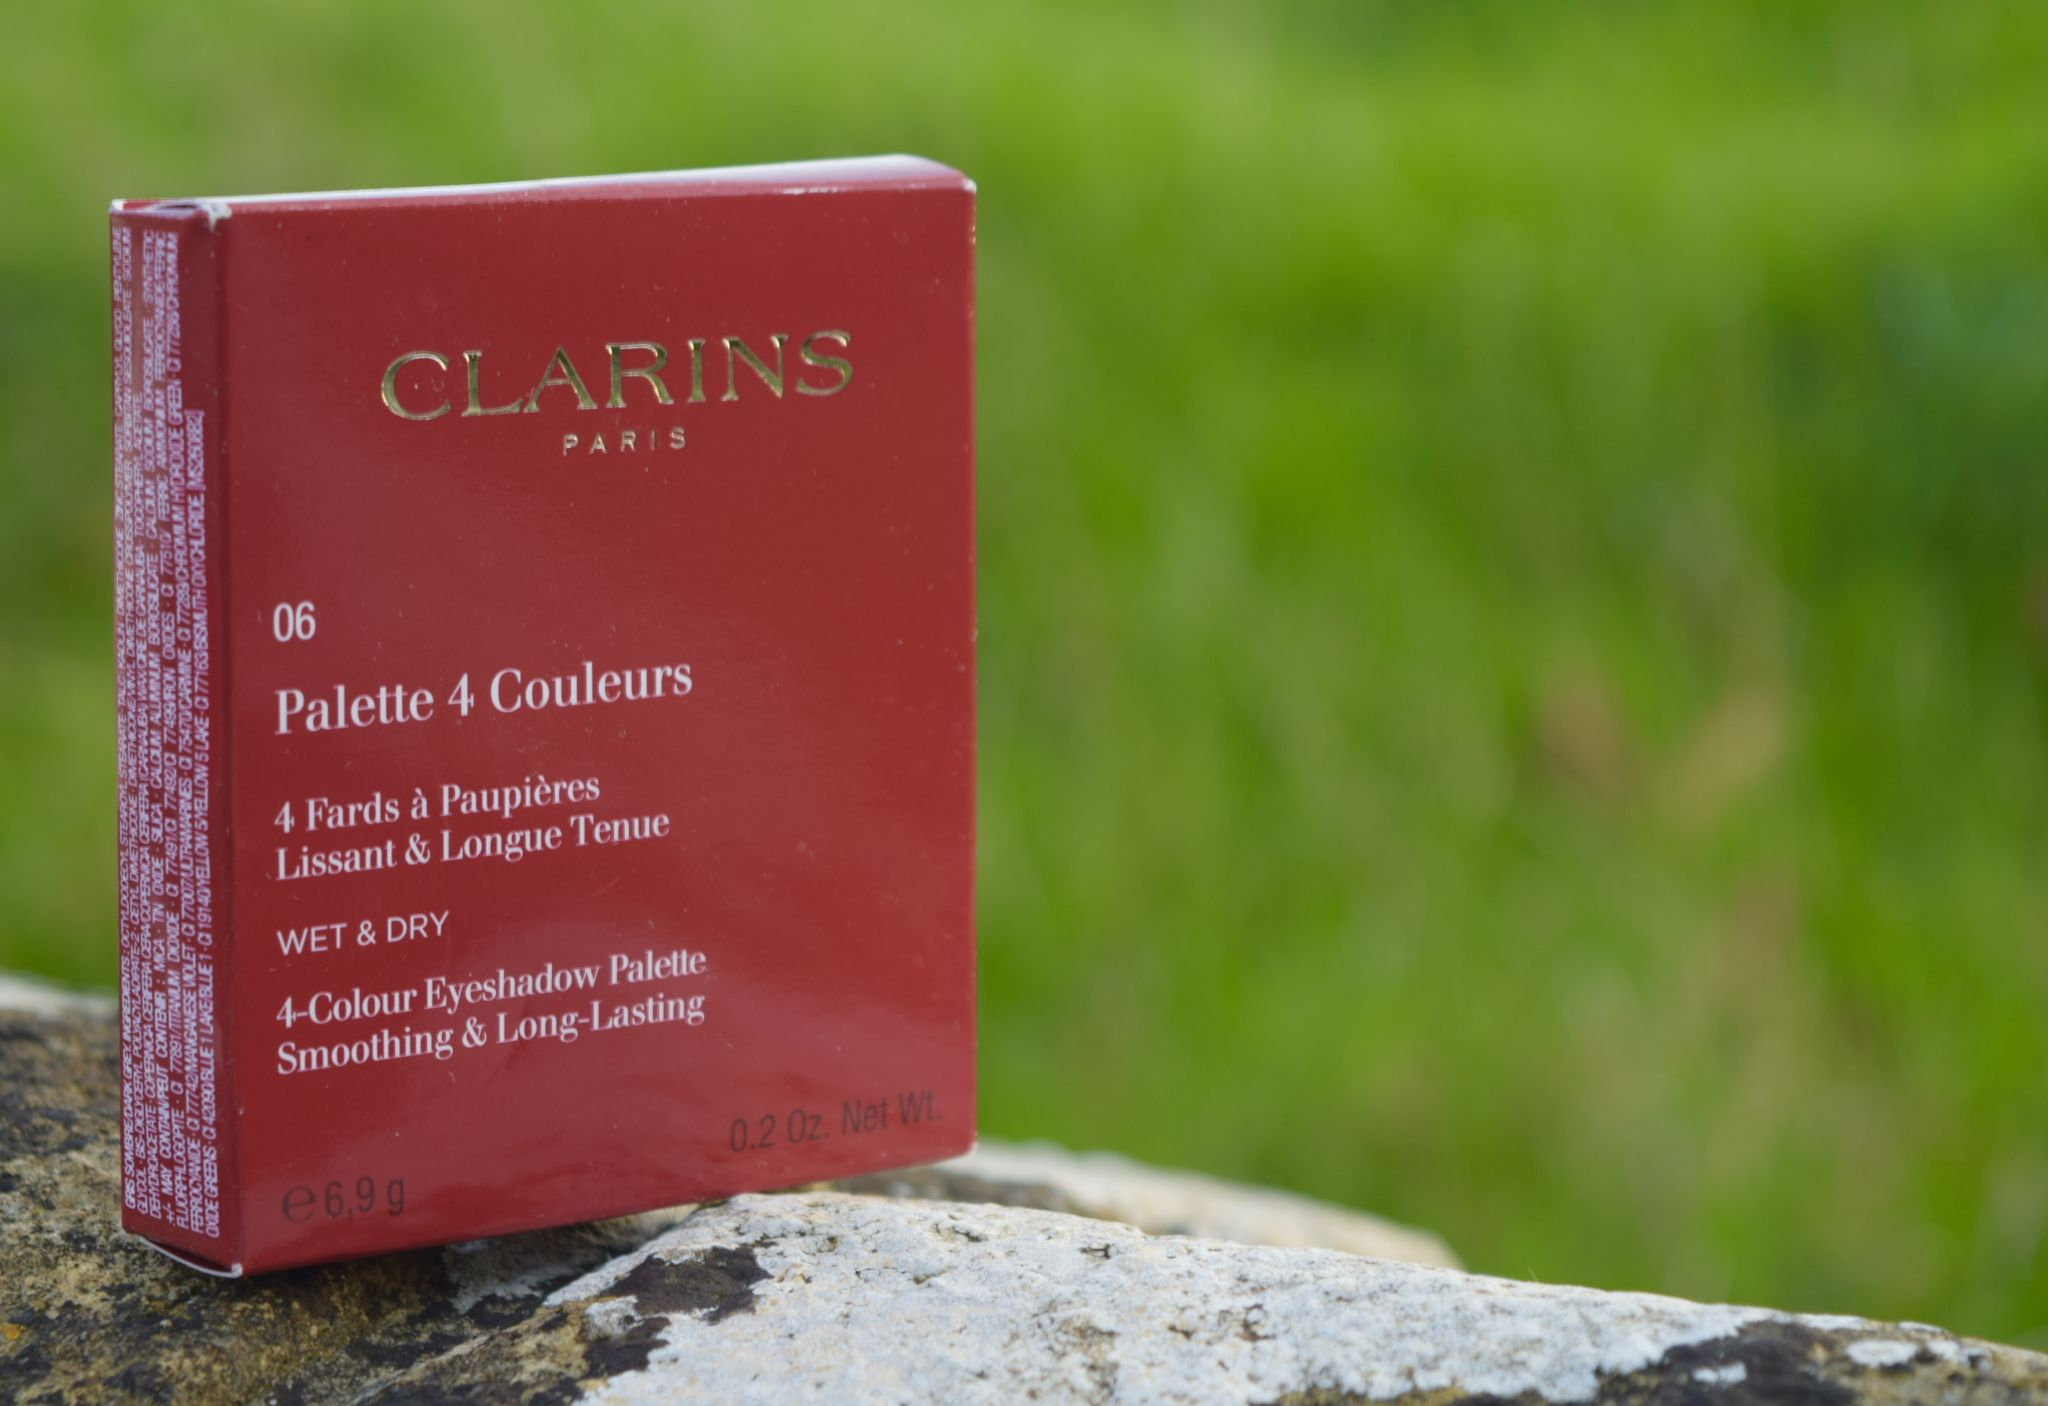 Clarins Palette 4 Couleurs 06 The Luxe List